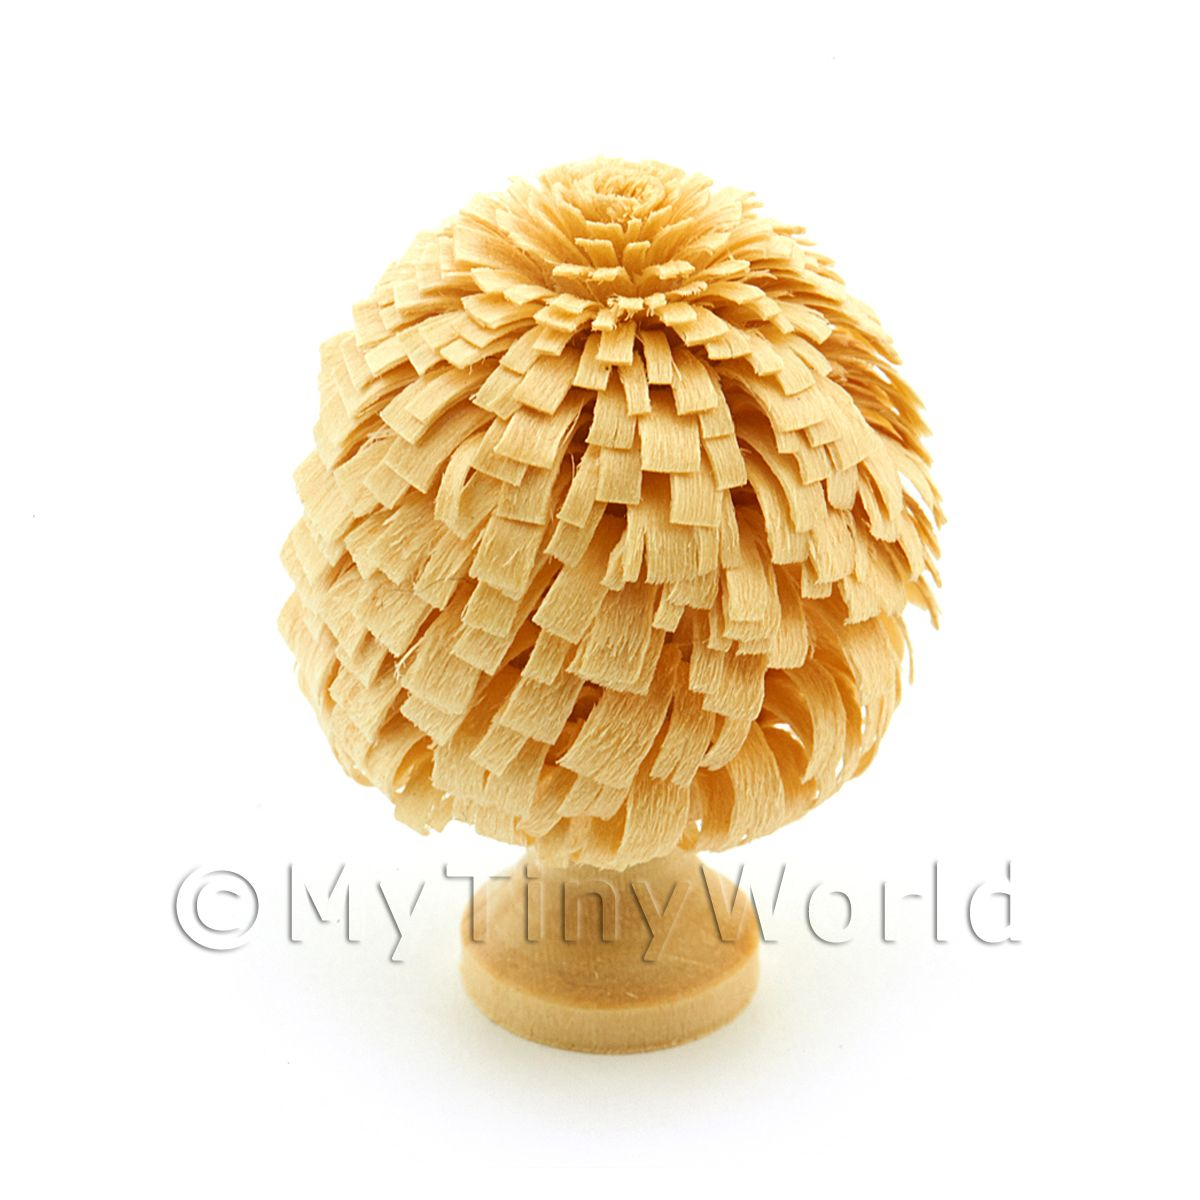 Dolls House Miniature 40mm Classic Shaped Unpainted Tree